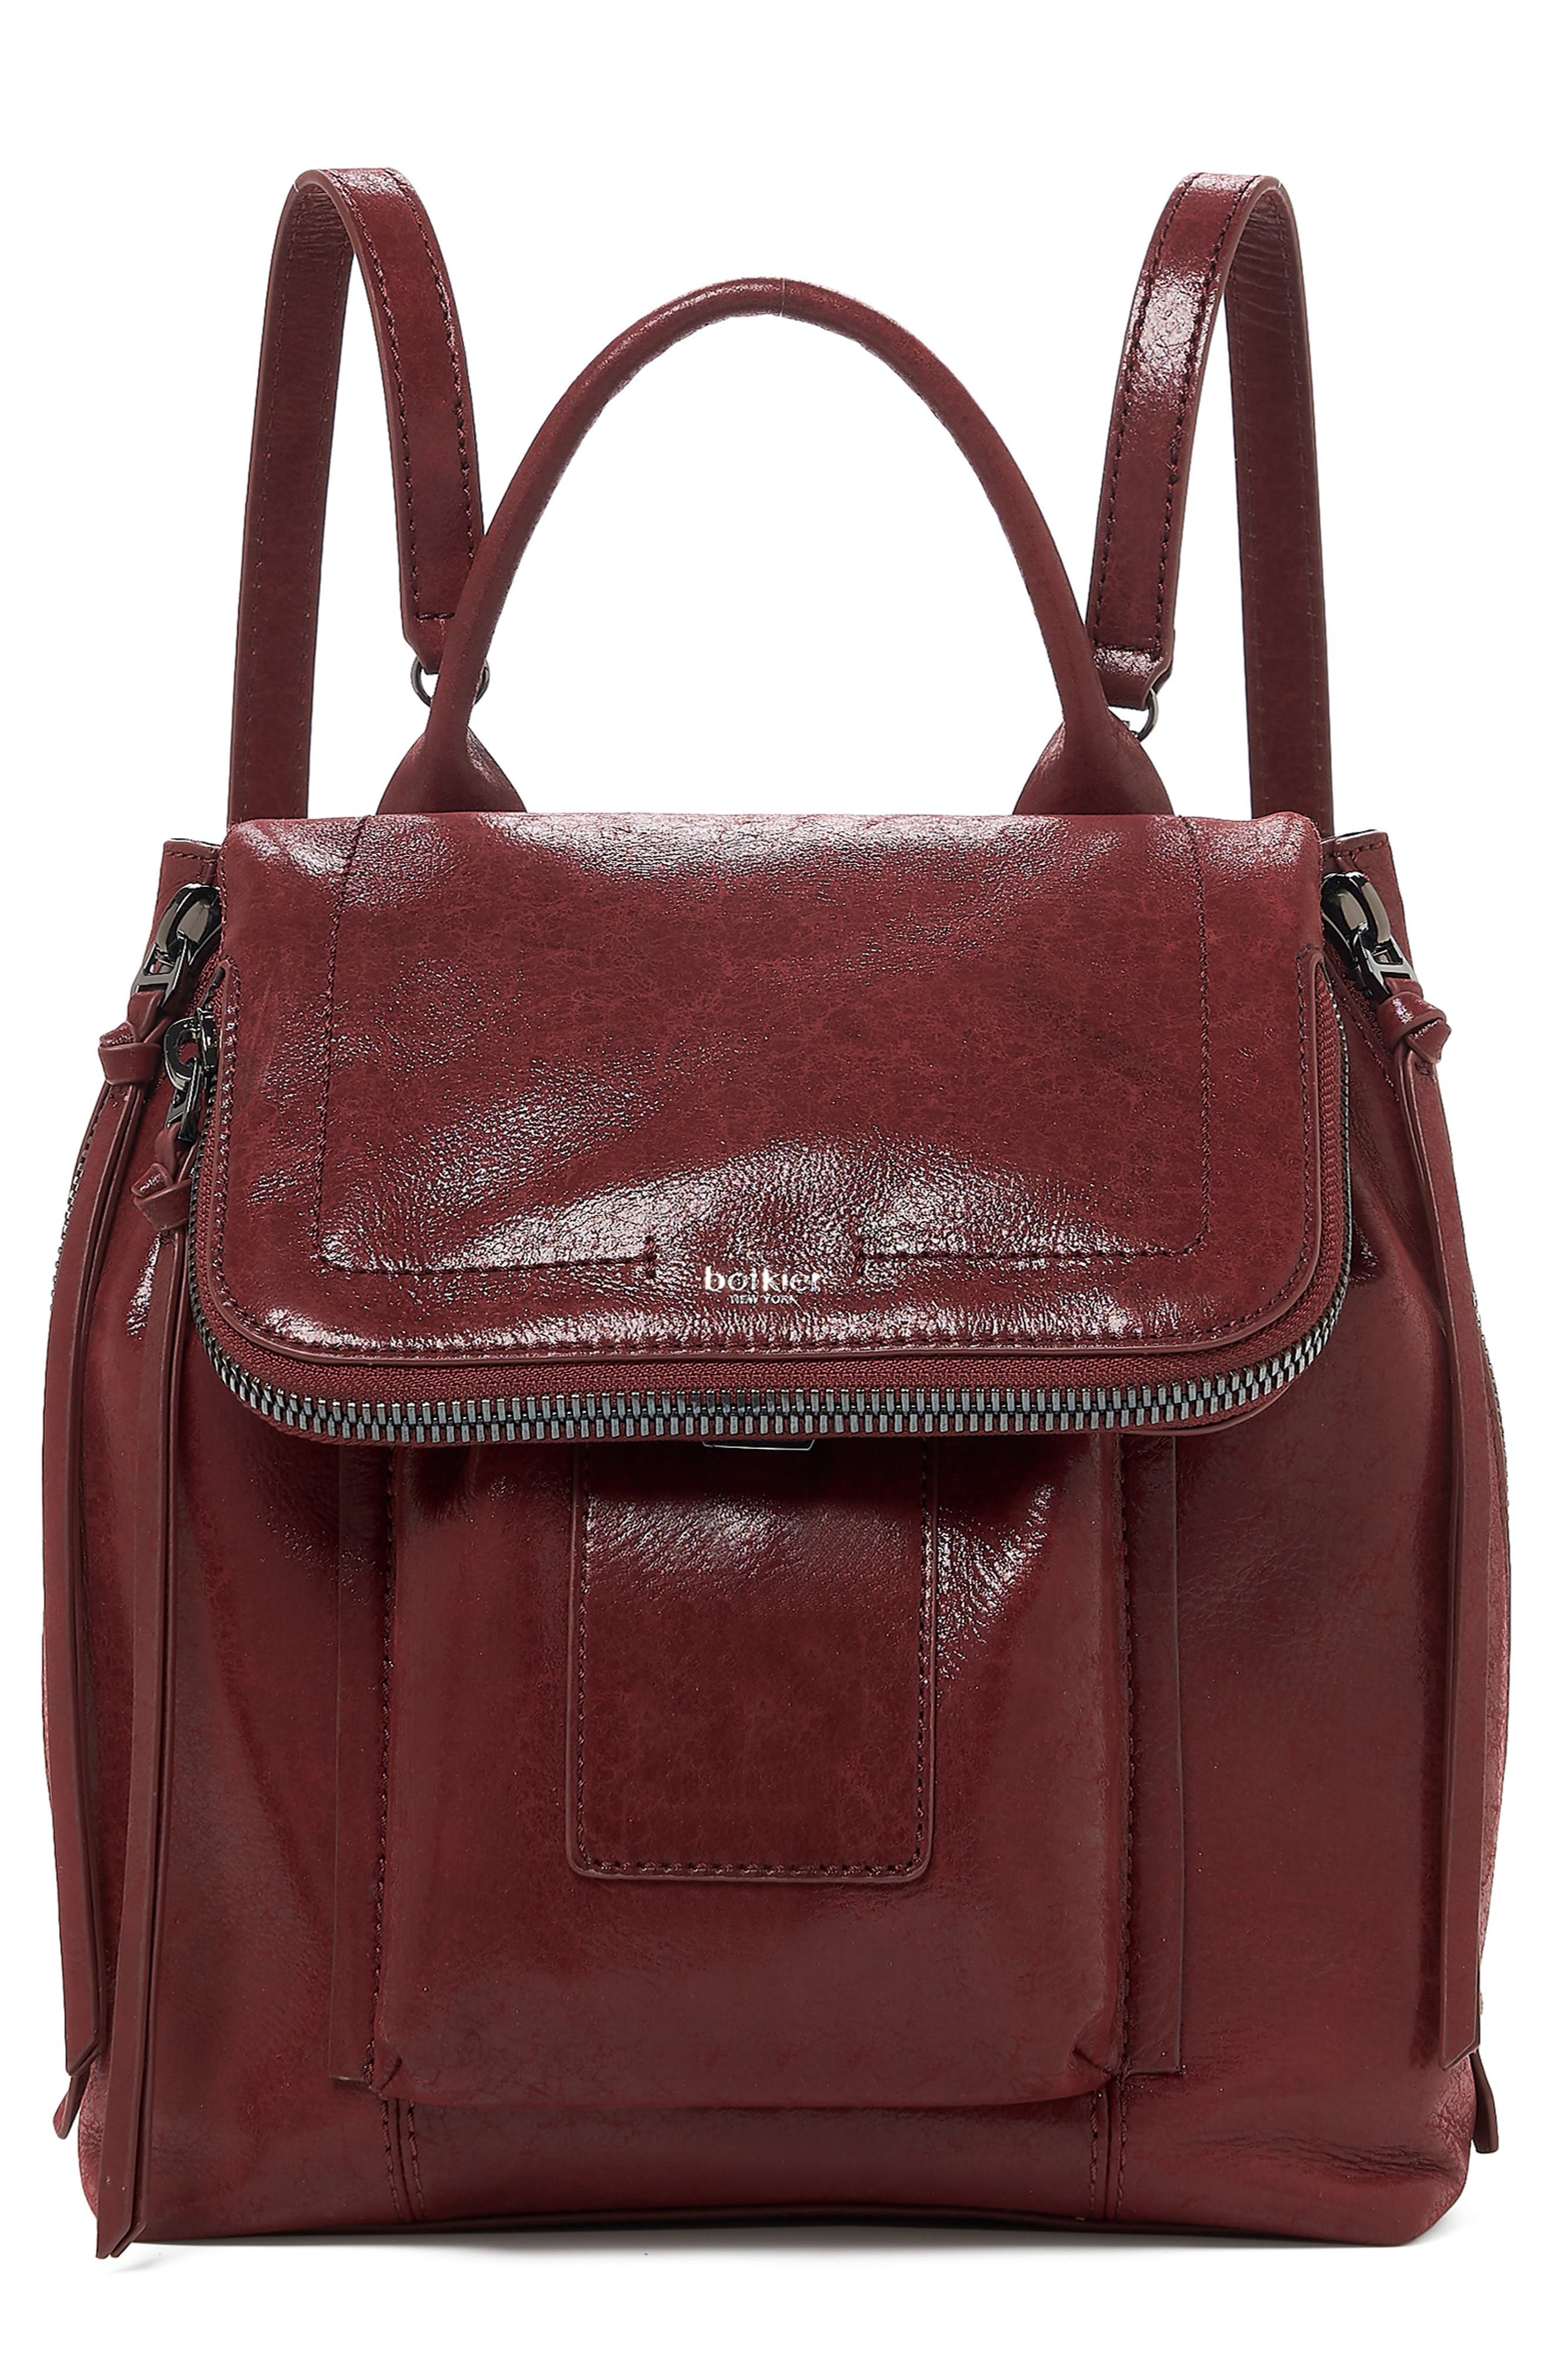 Warren Leather Backpack - Burgundy in Bordeaux